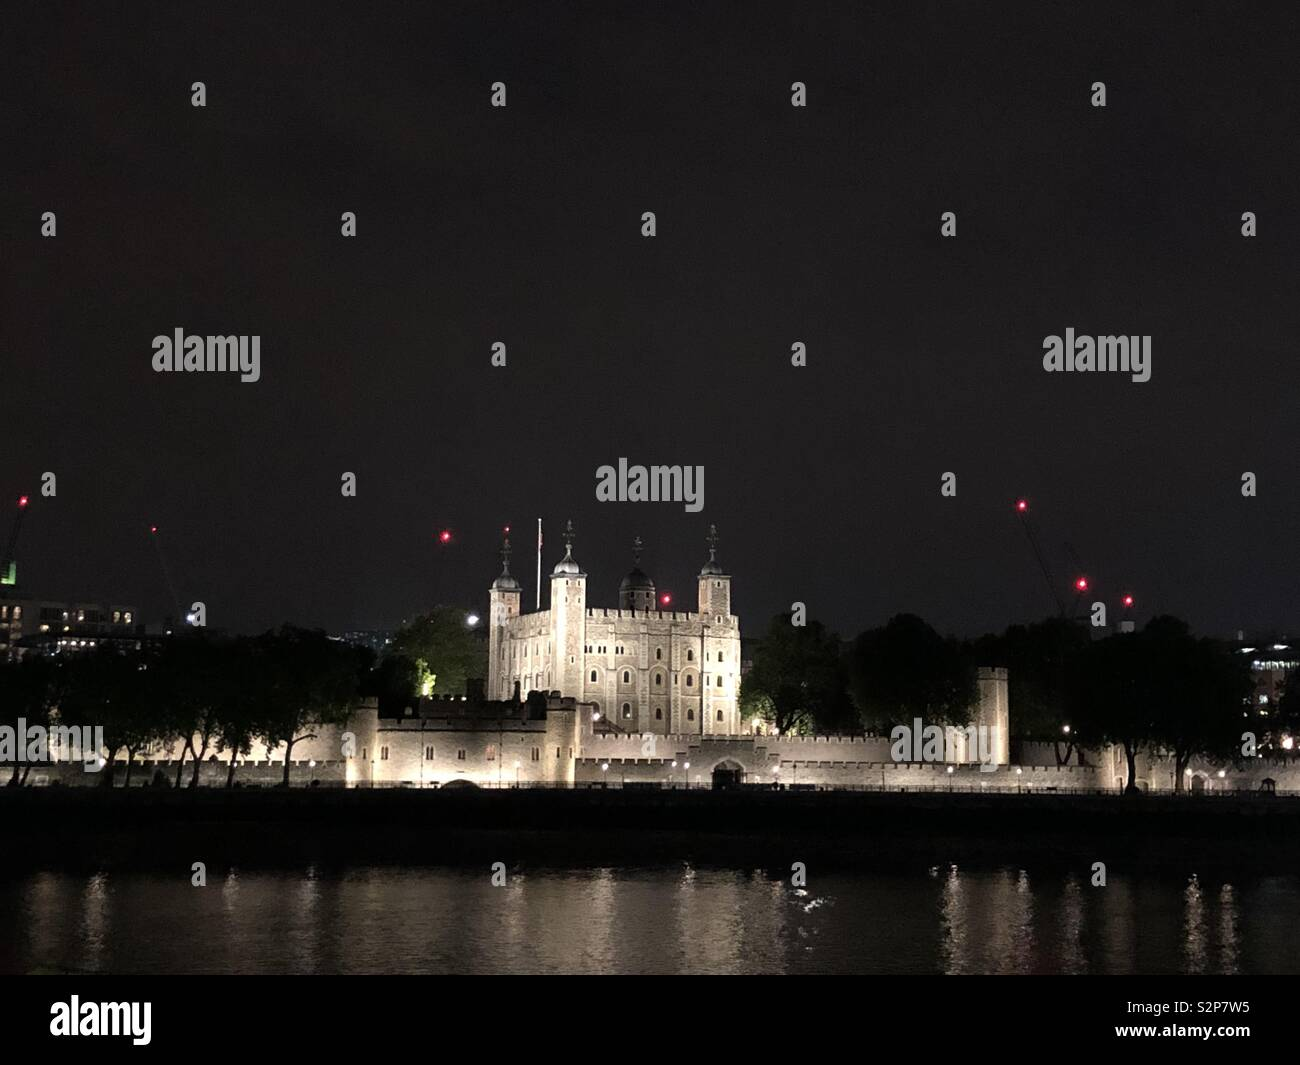 Tower of London, London, UK - Stock Image